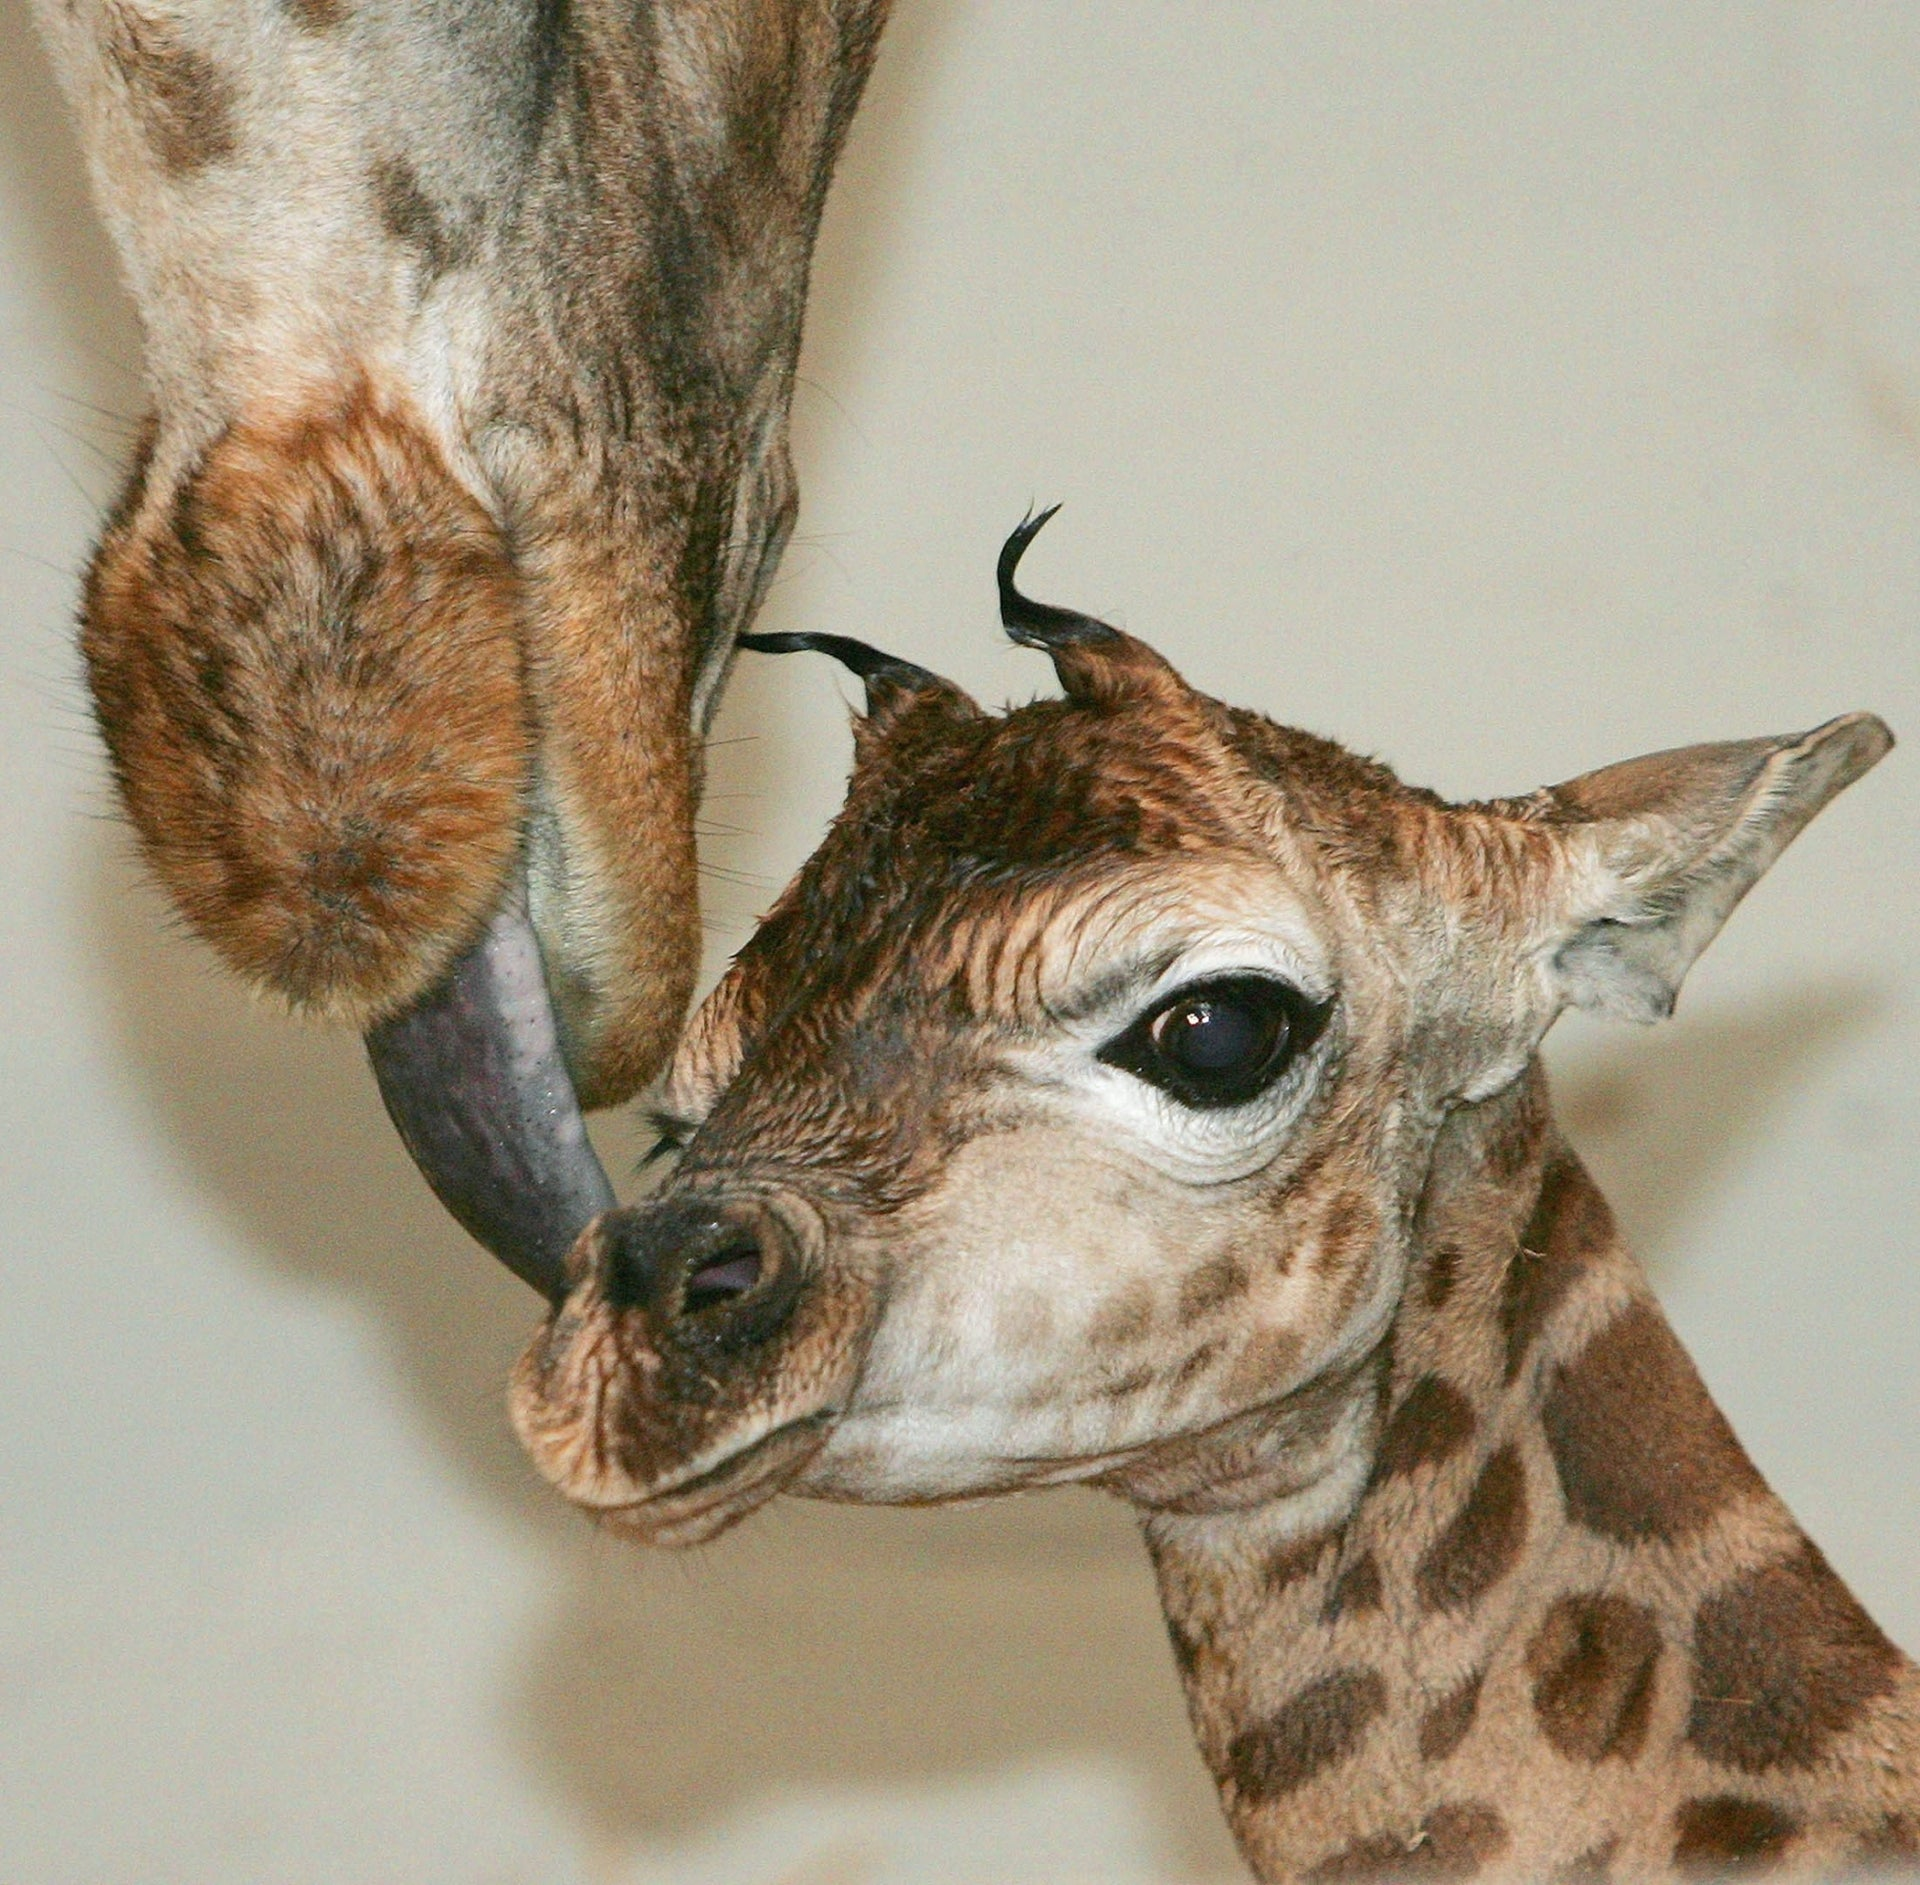 Giraffe mother Luana licks her newborn just moments after its birth at the zoo in Rapperswil, Switzerland, May 17, 2004. The baby, a male, weighed 85 kilograms and measured 1.5 metres in height at its birth.